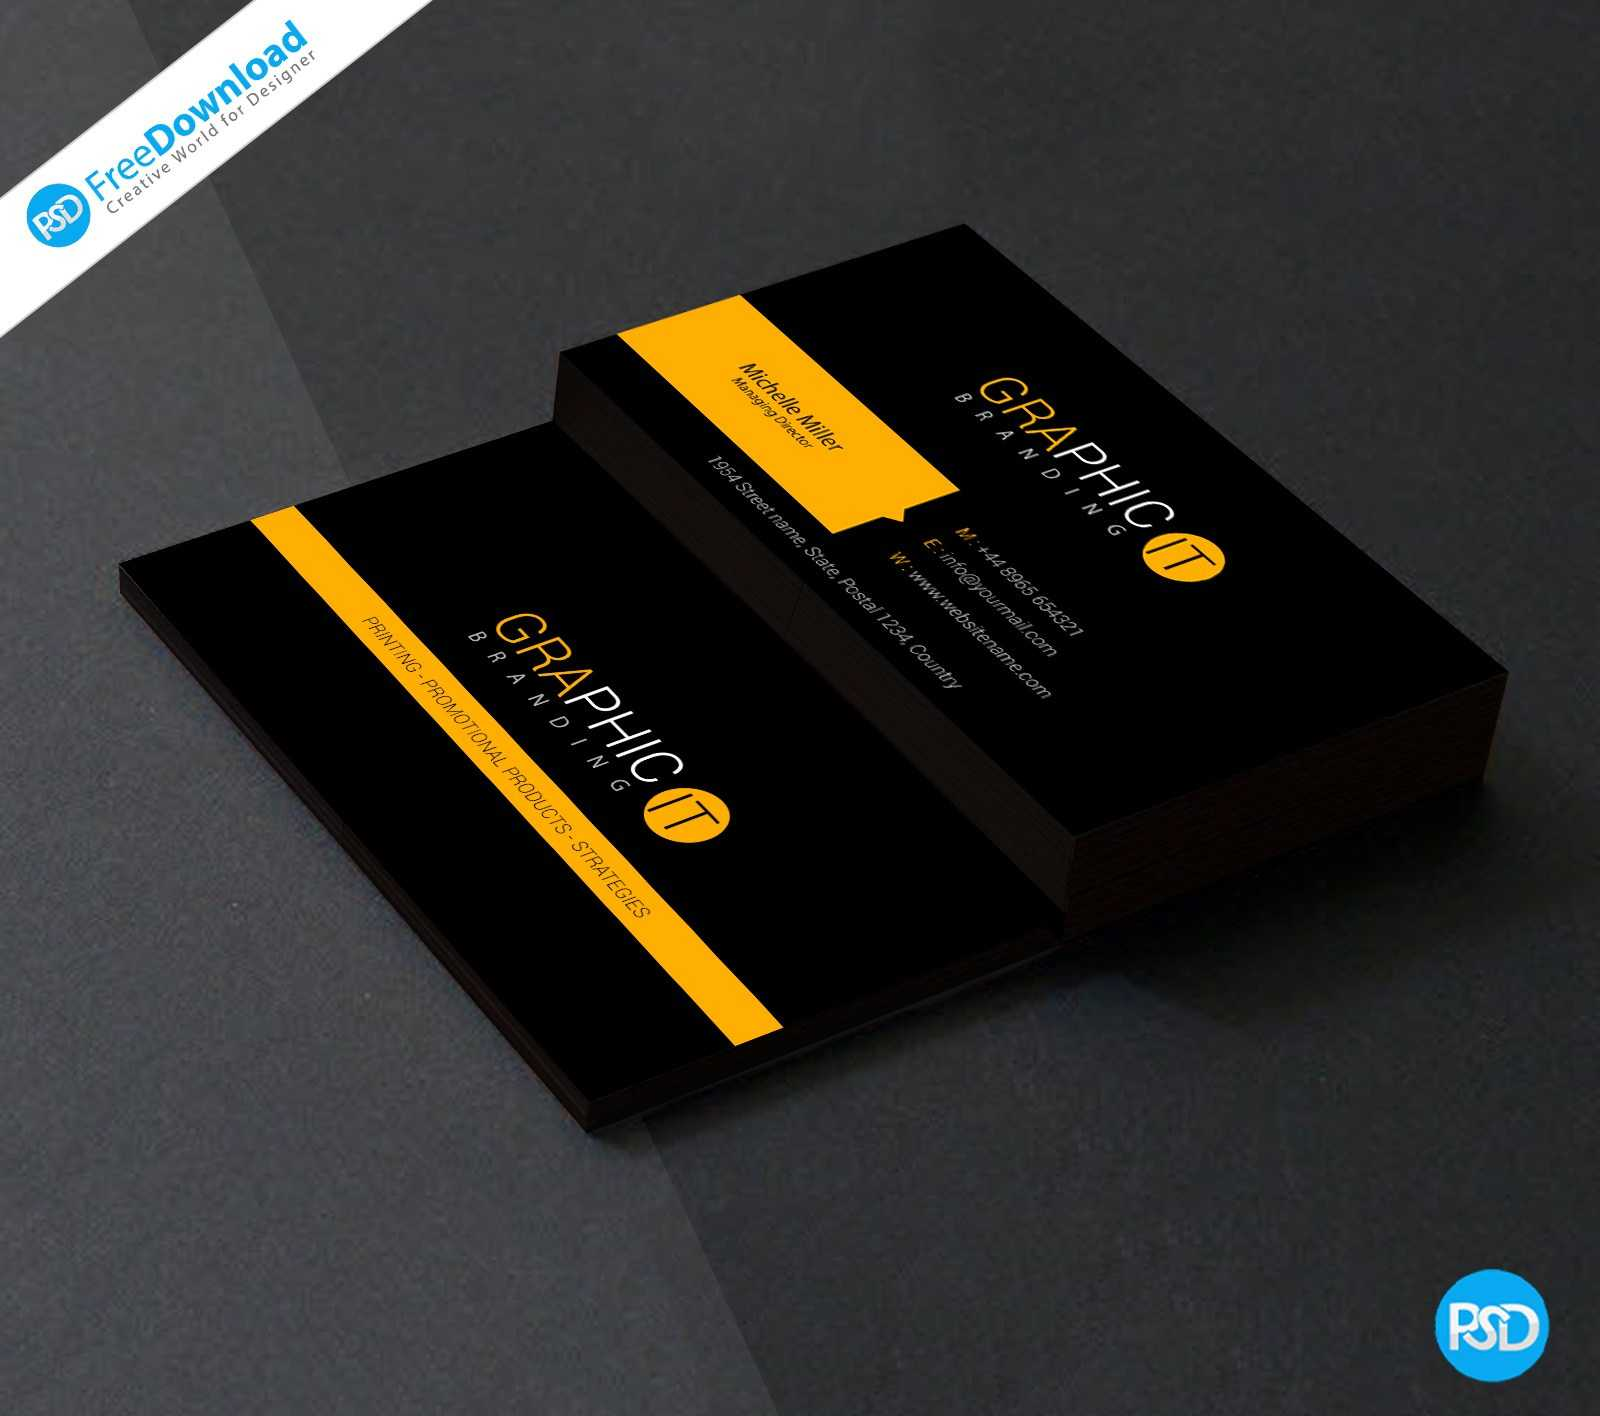 023 Professional Business Card Design Psd Blank Template With Professional Business Card Templates Free Download